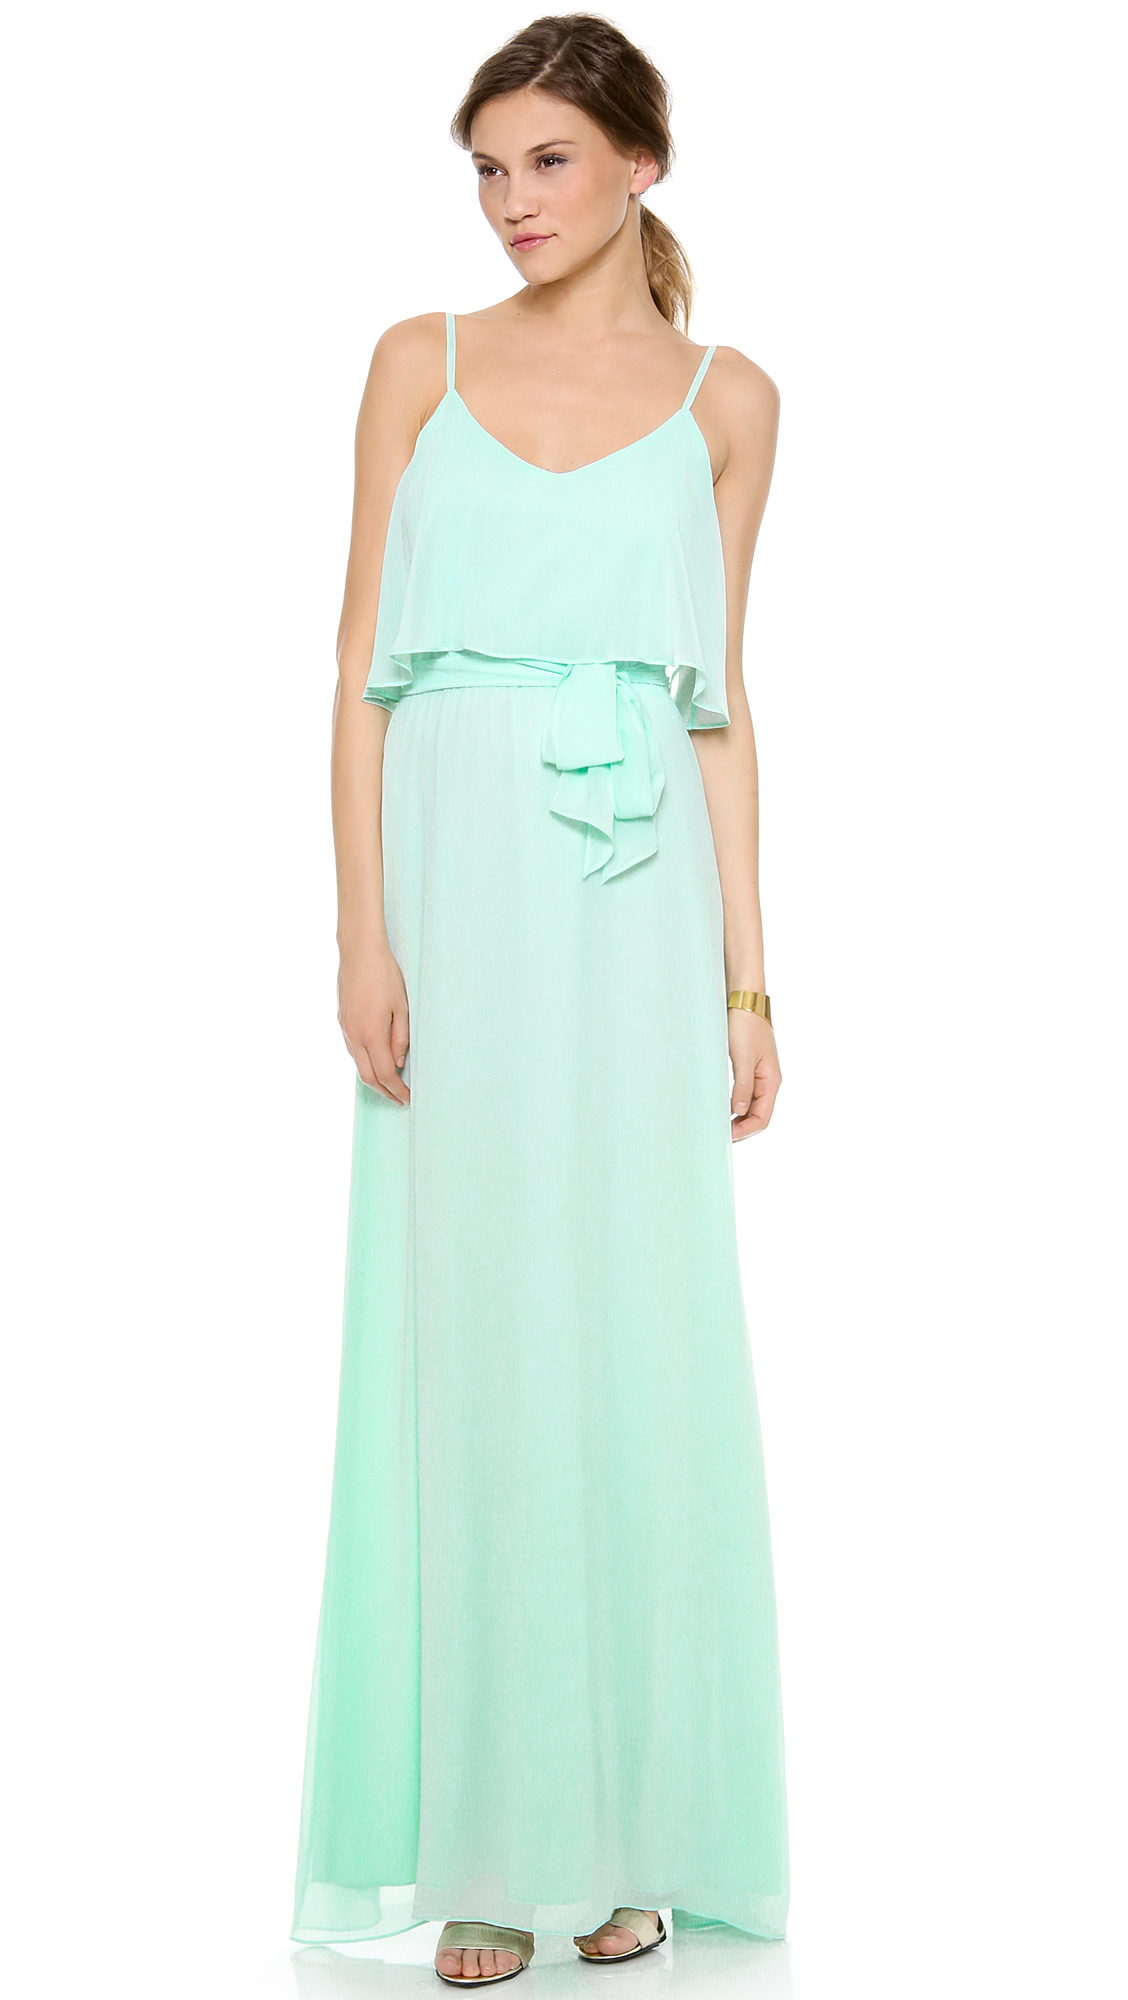 Joanna August Dani Maxi Dress - I Want Candy